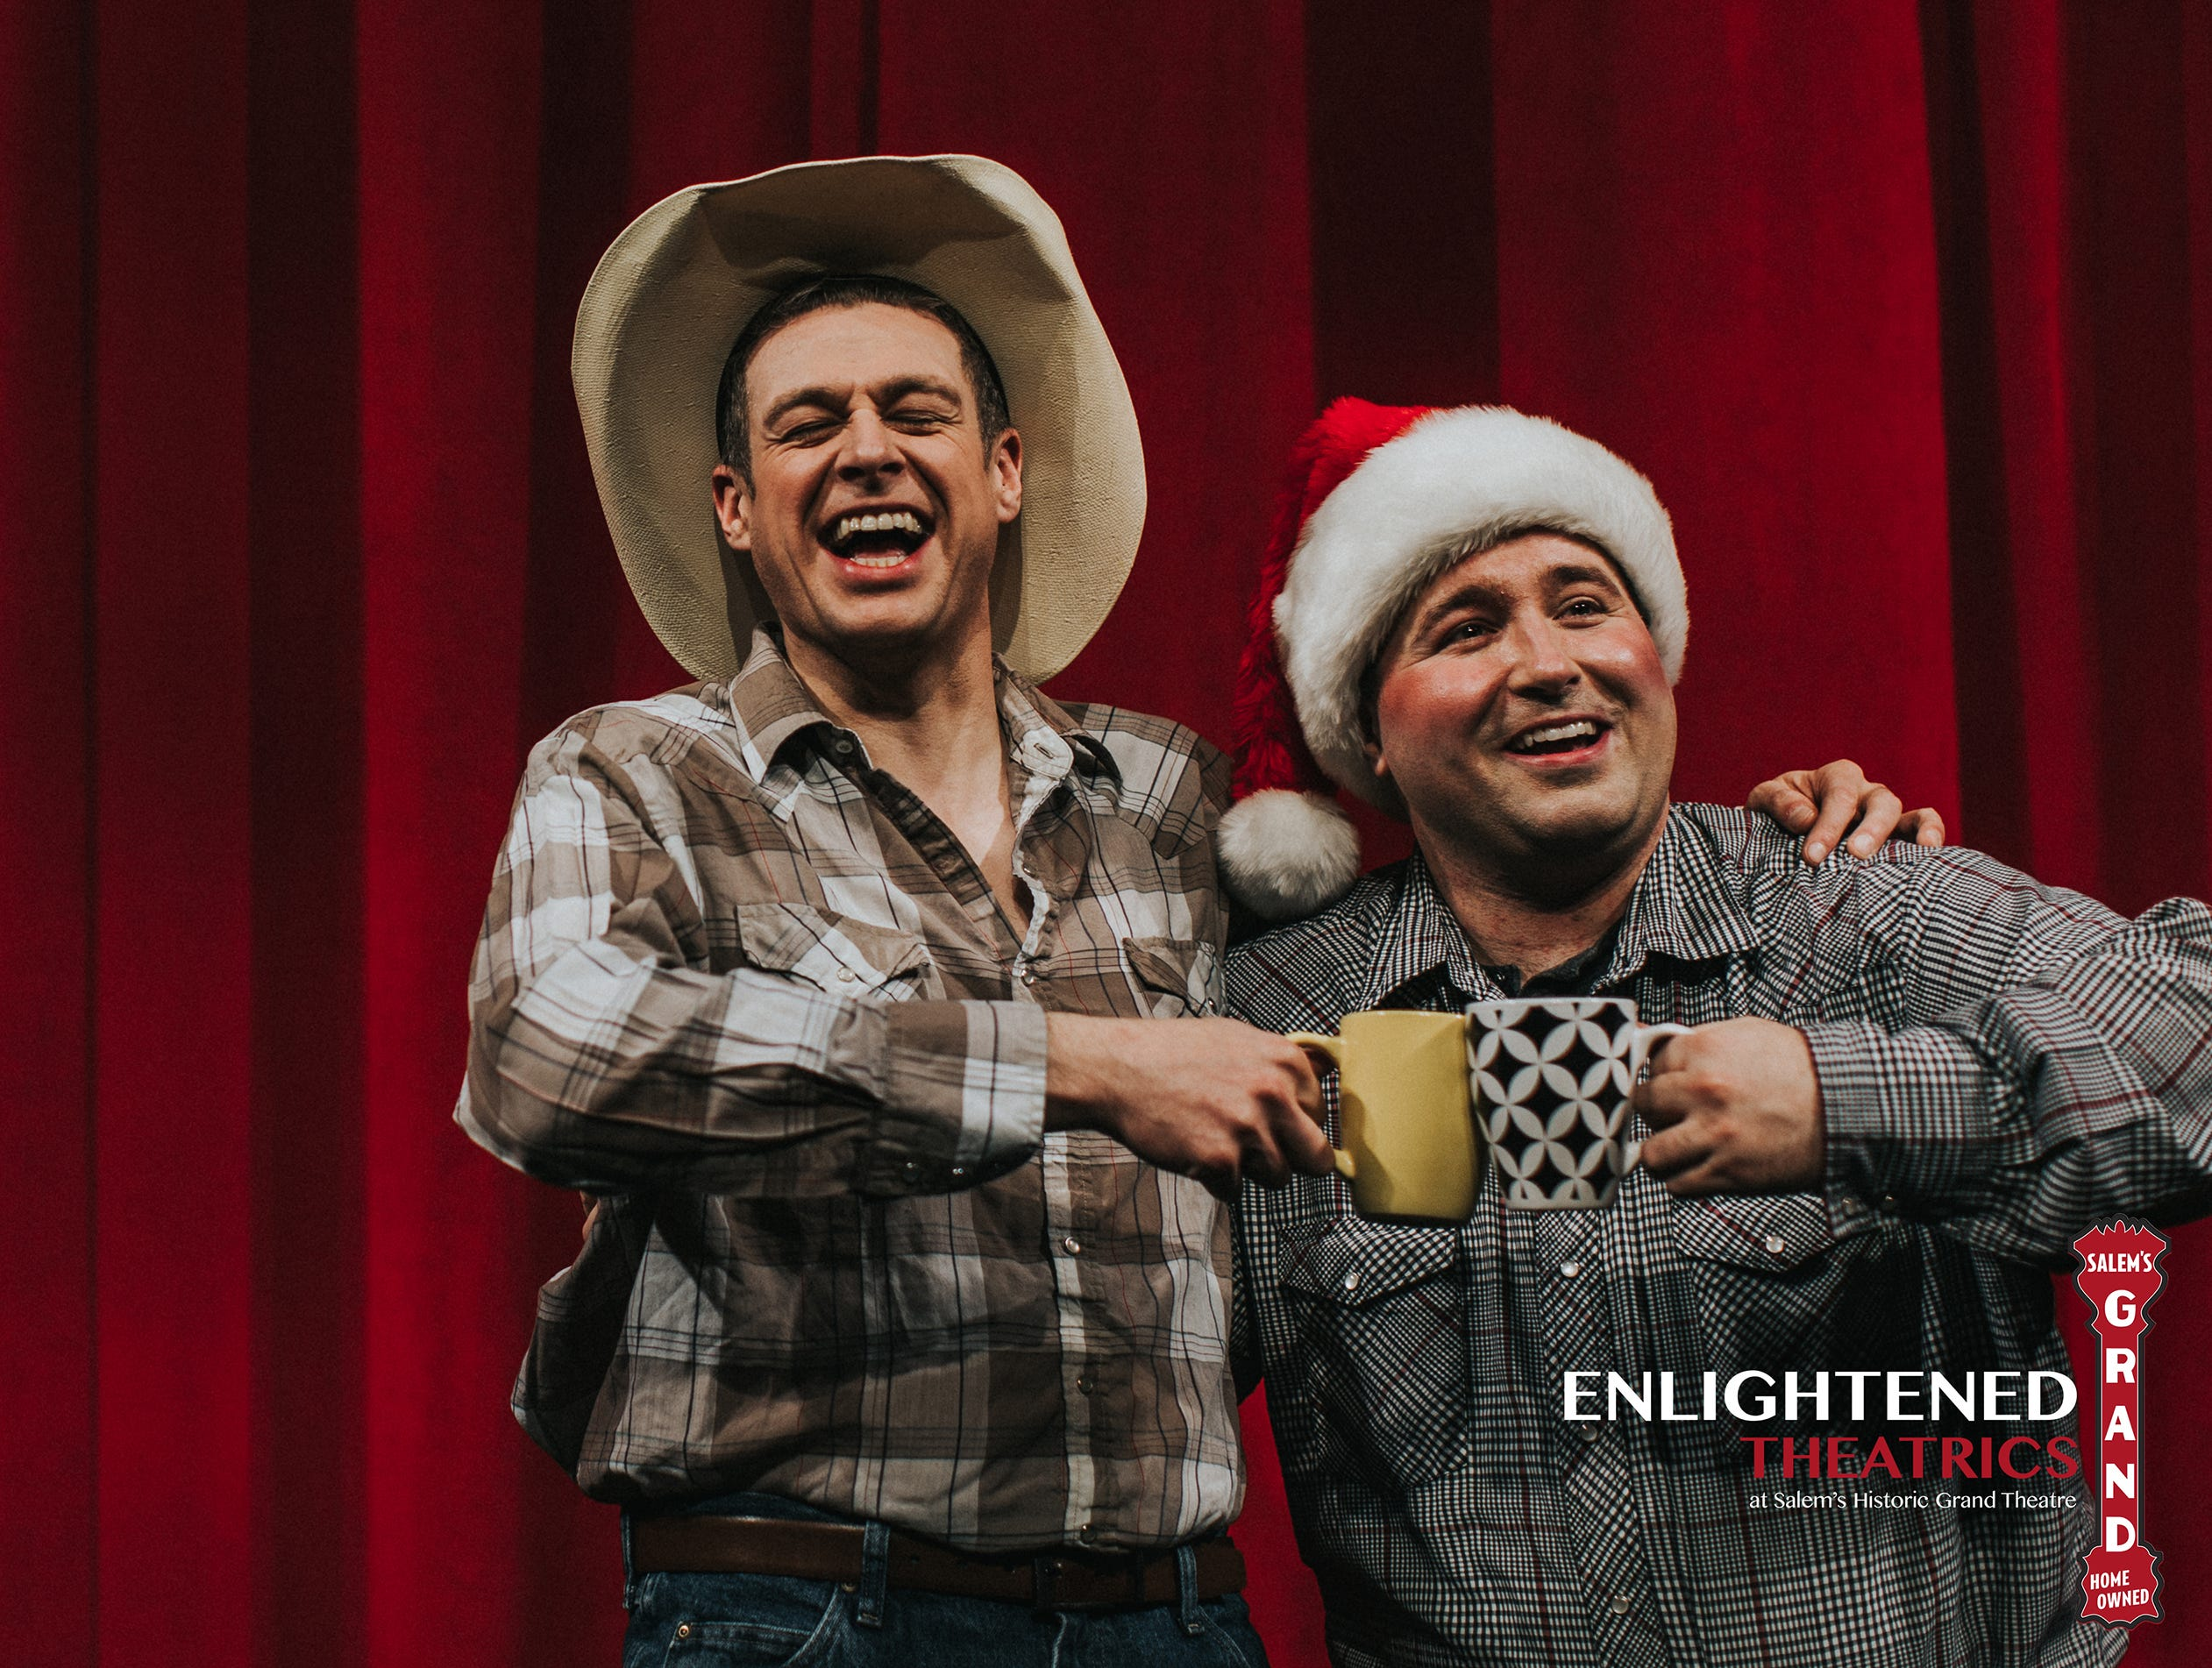 """A Tuna Christmas"": Two actors will play 11 characters each in the sequel to ""Greater Tuna,"" that takes place in the third smallest town in Texas, preview night at 7:30 p.m. Thursday, Dec. 13, with opening night at 7:30 p.m. Friday, Dec. 14, show runs every Wednesday to Sunday through Dec. 30, closed on Dec. 26, Enlightened Theatrics, 187 High St. NE Suite 300. $28 for adults, $23 for students, $10 preview performances. Tickets are available an hour before showtimes or at Enlightened Theatrics' Office Wednesday to Friday from noon to 6 p.m. www.EnlightenedTheatrics.org or 503-585-3427 for more info."